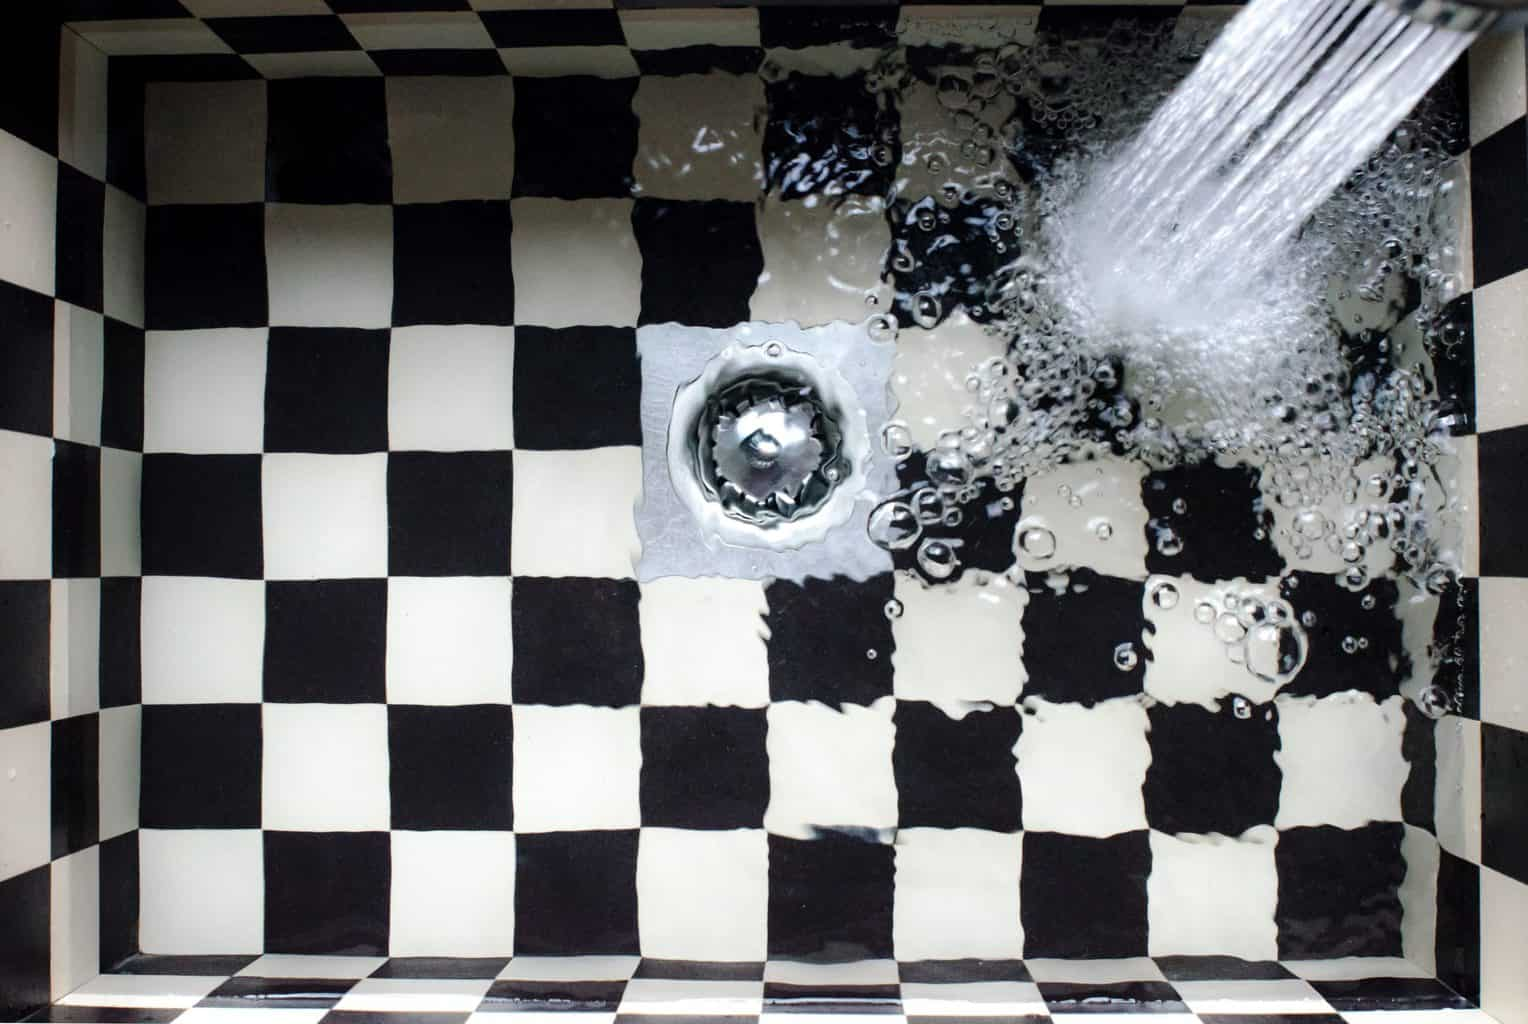 Water flowing in a shower drain hair catcher